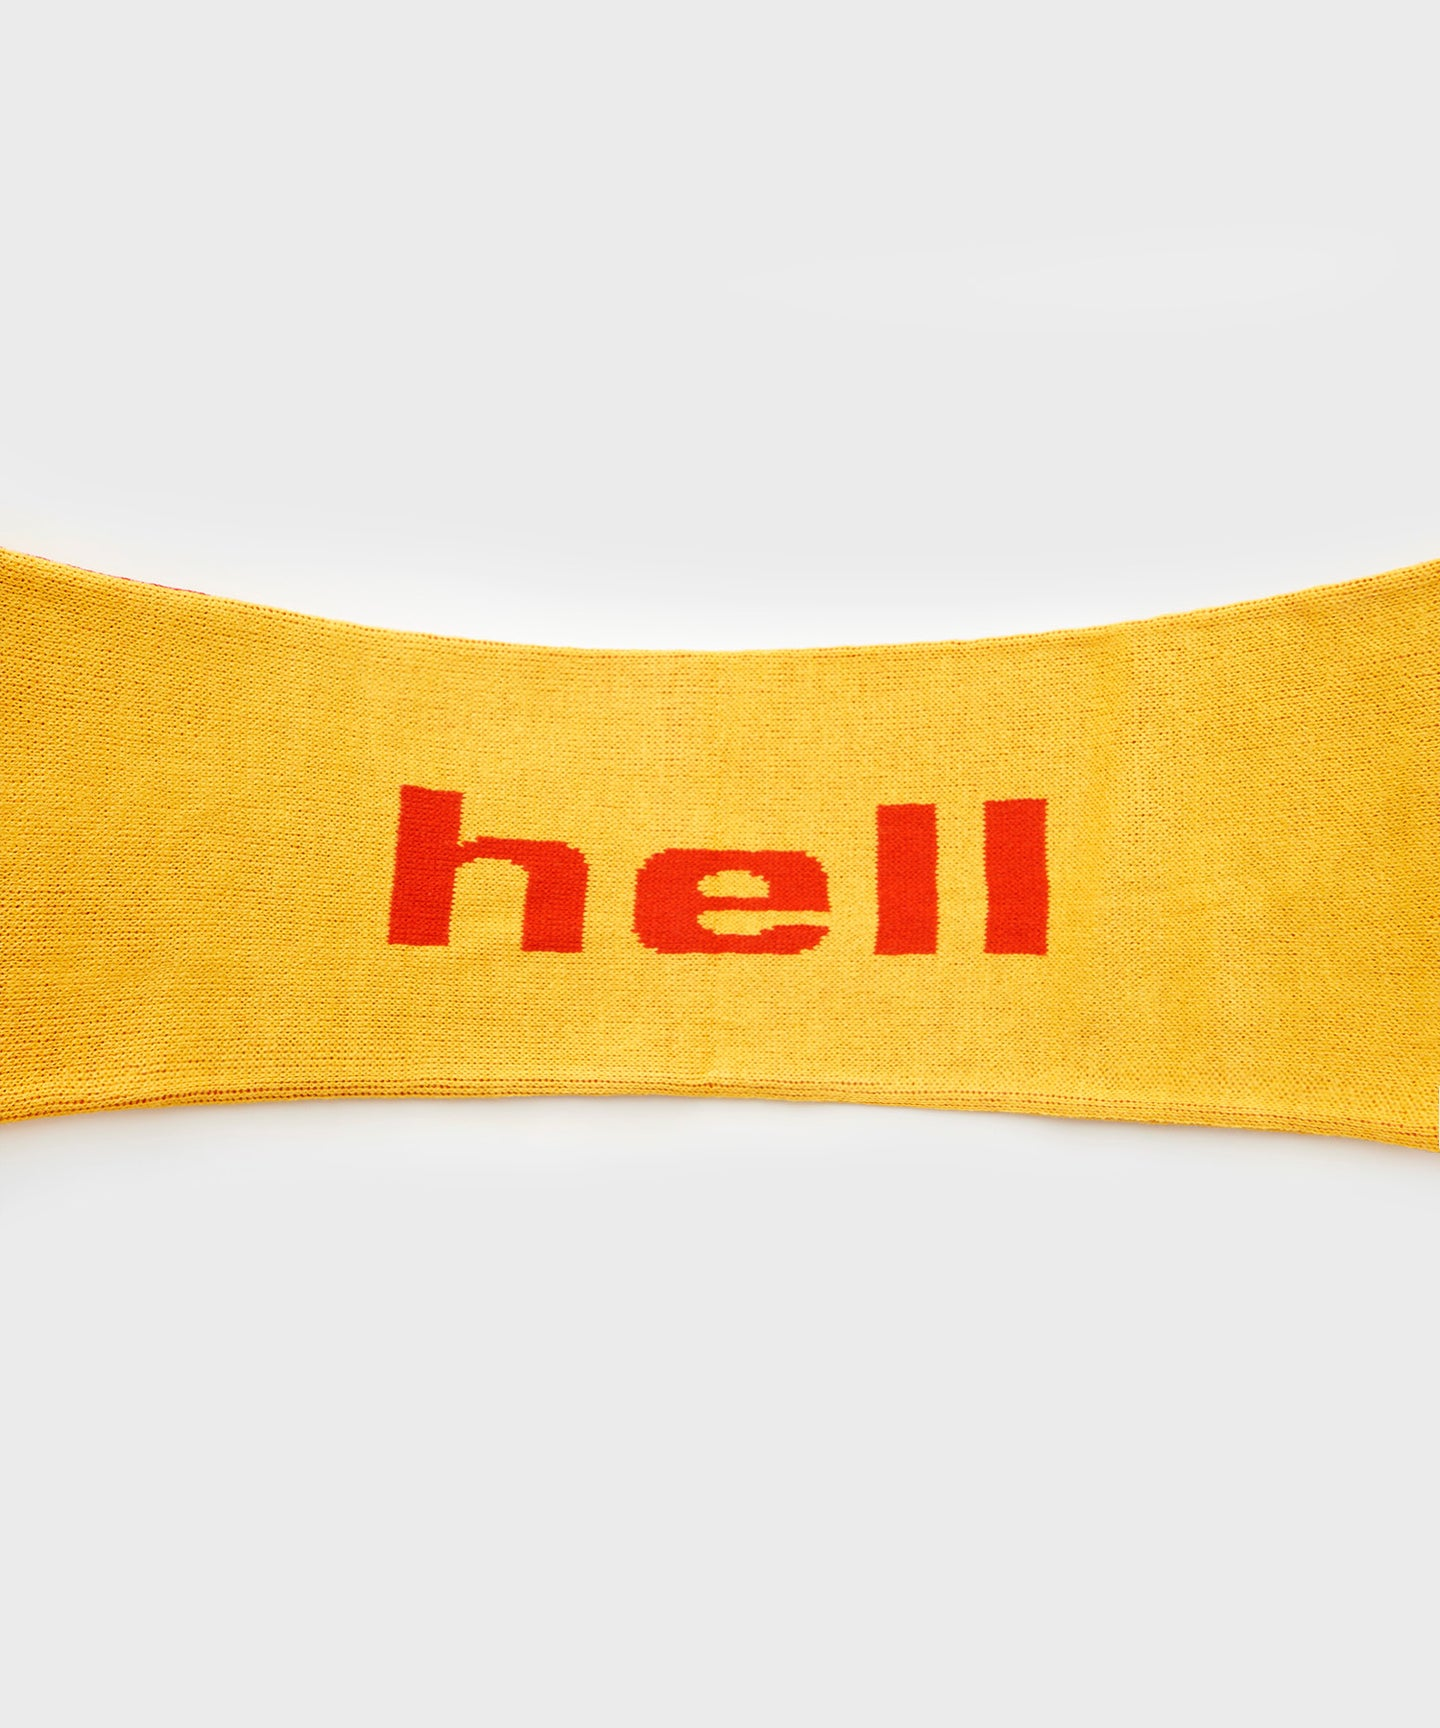 HELL SCARF